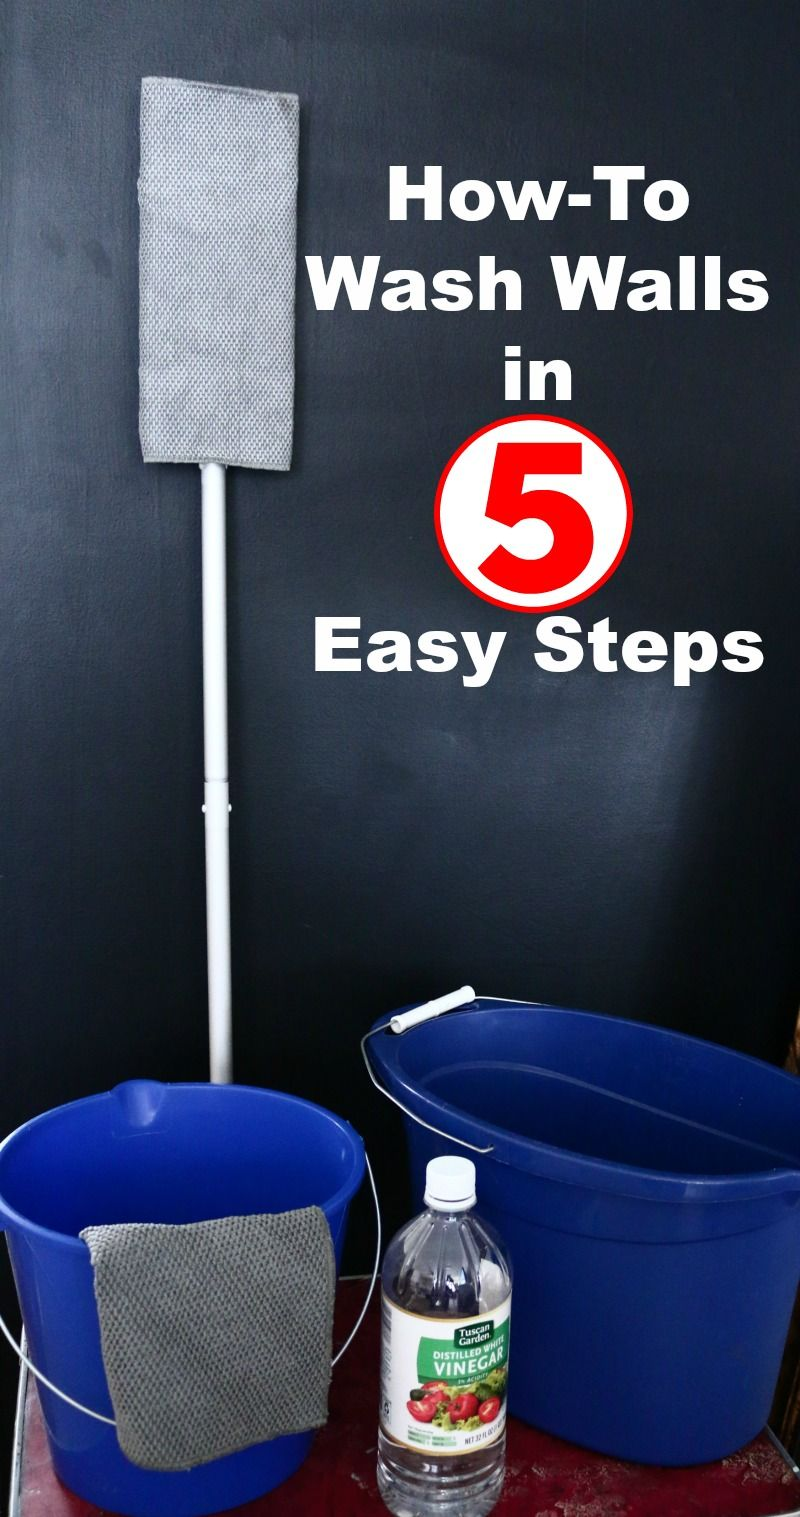 How To Wash Walls In 5 Easy Steps Cleaning Walls Washing Walls Cleaning Hacks